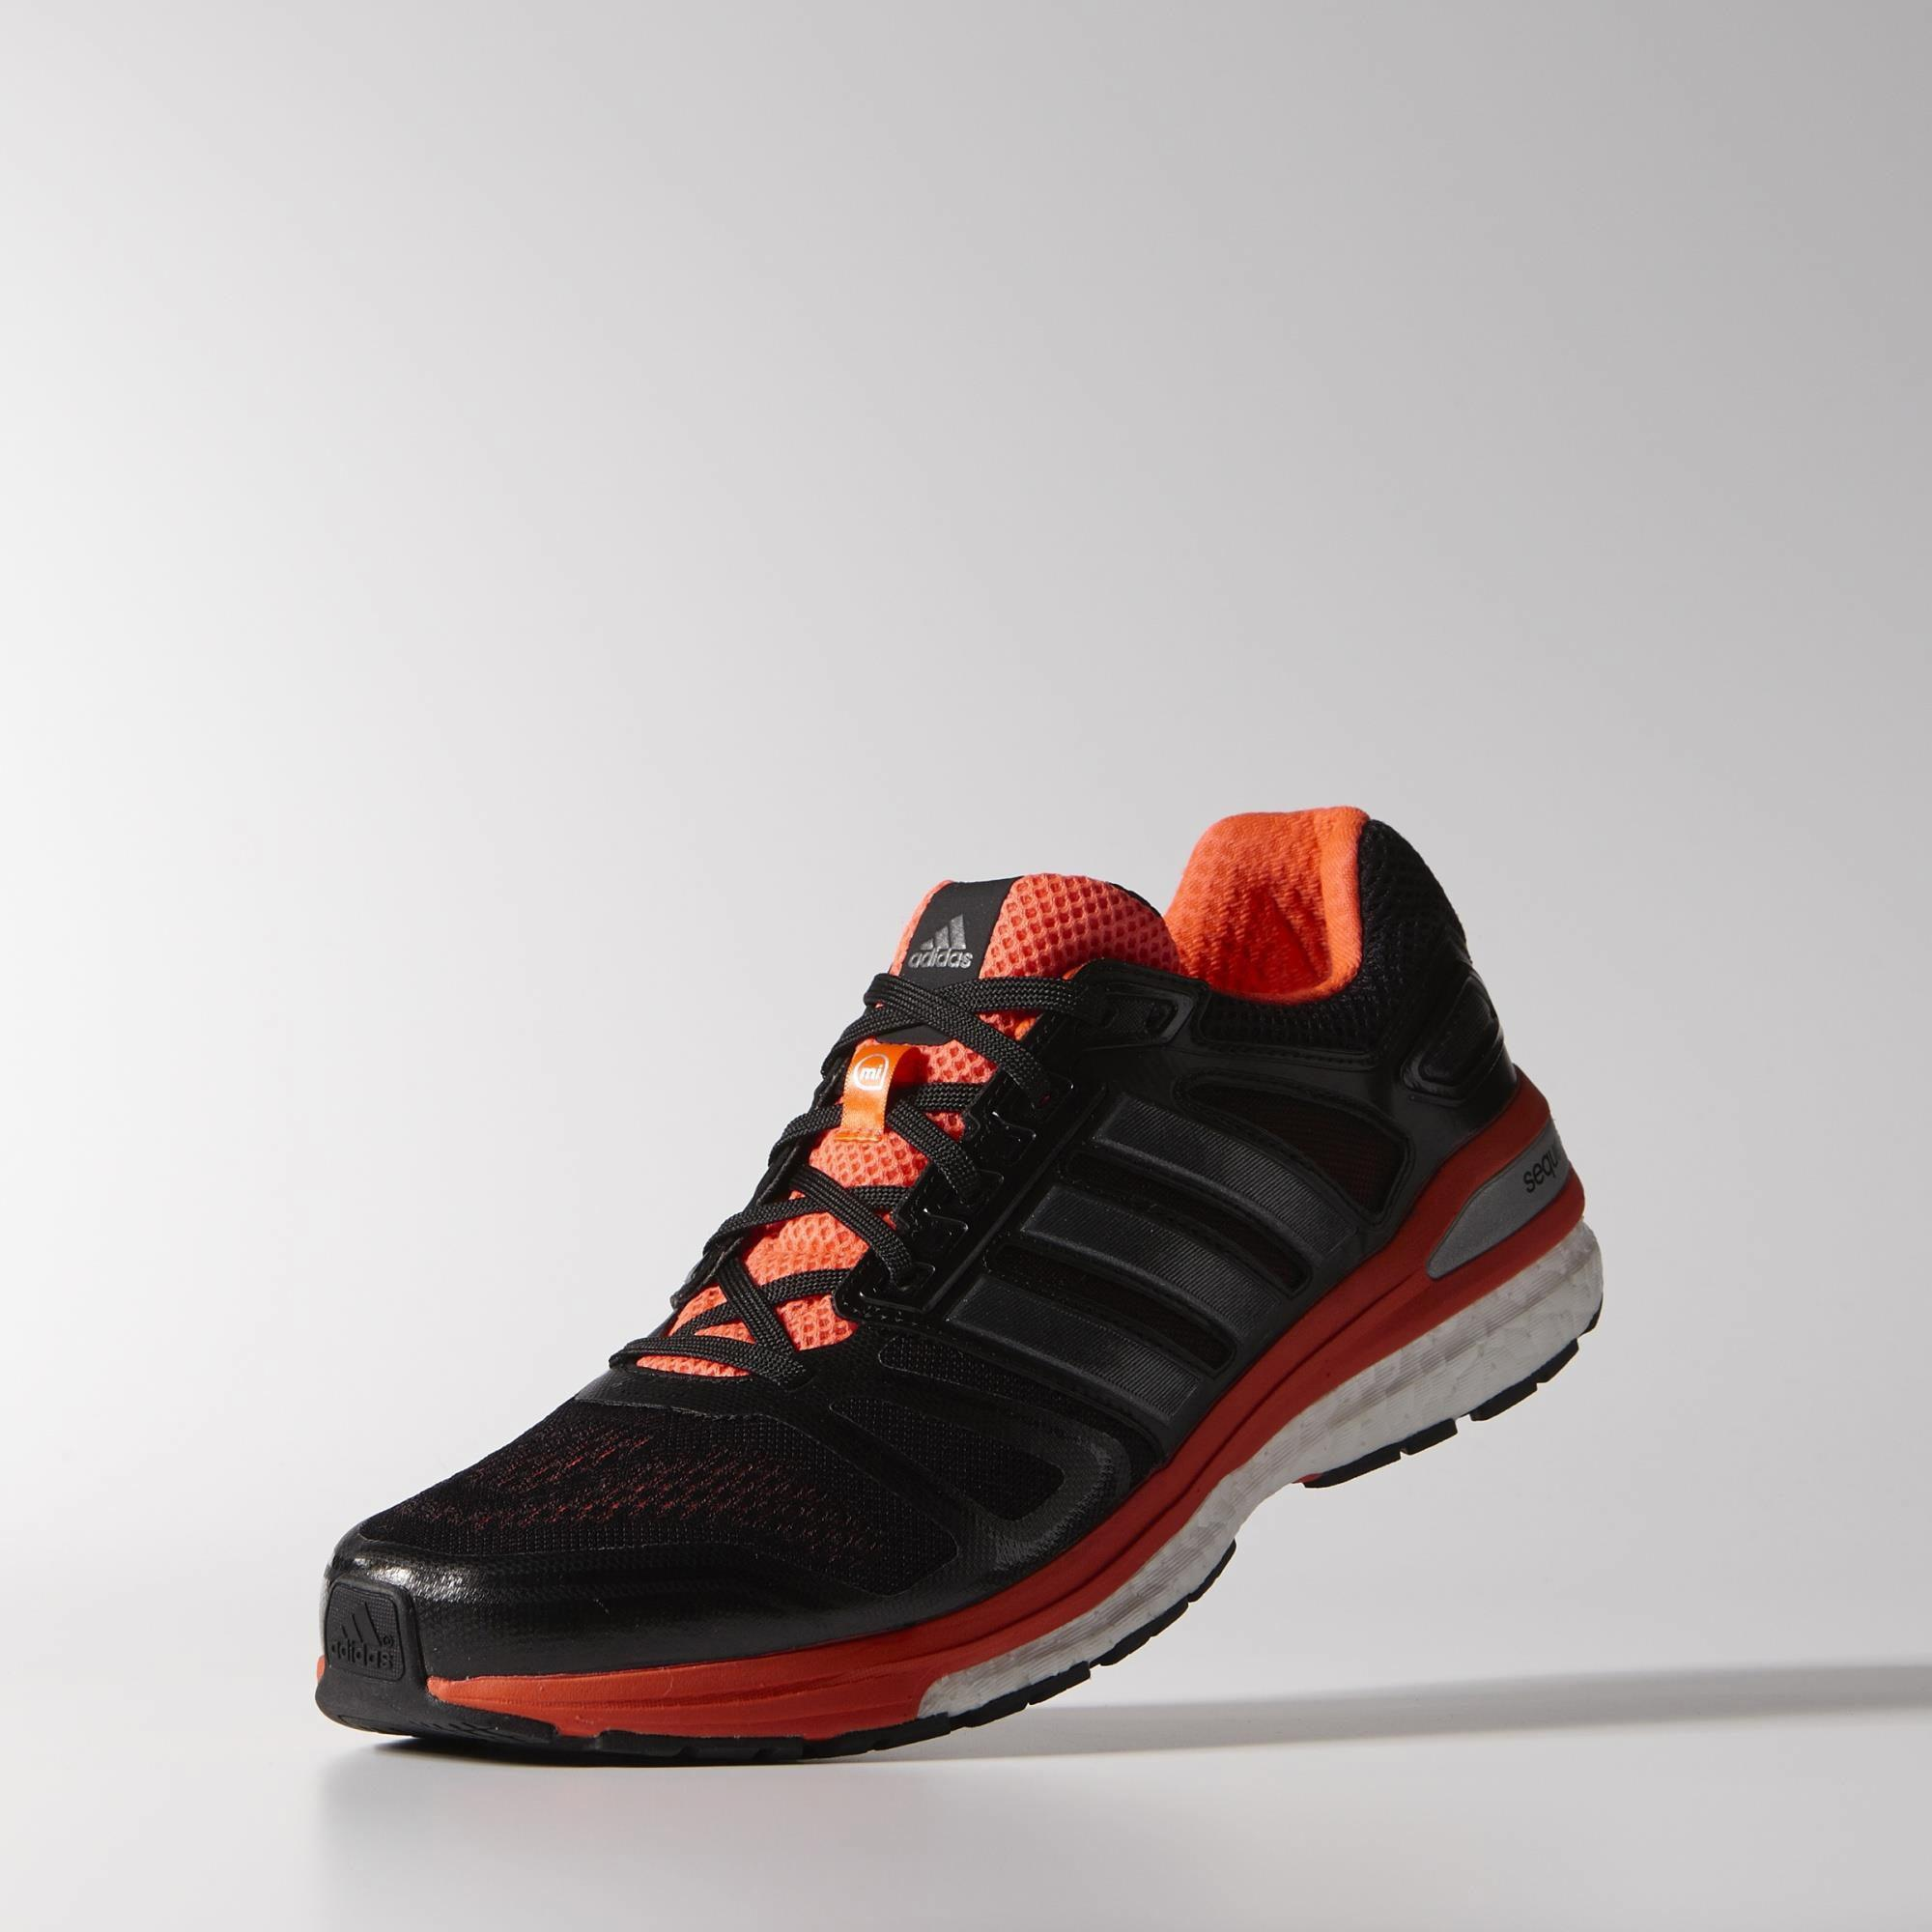 Adidas Mens Supernova Sequence Boost 7 Running Shoes